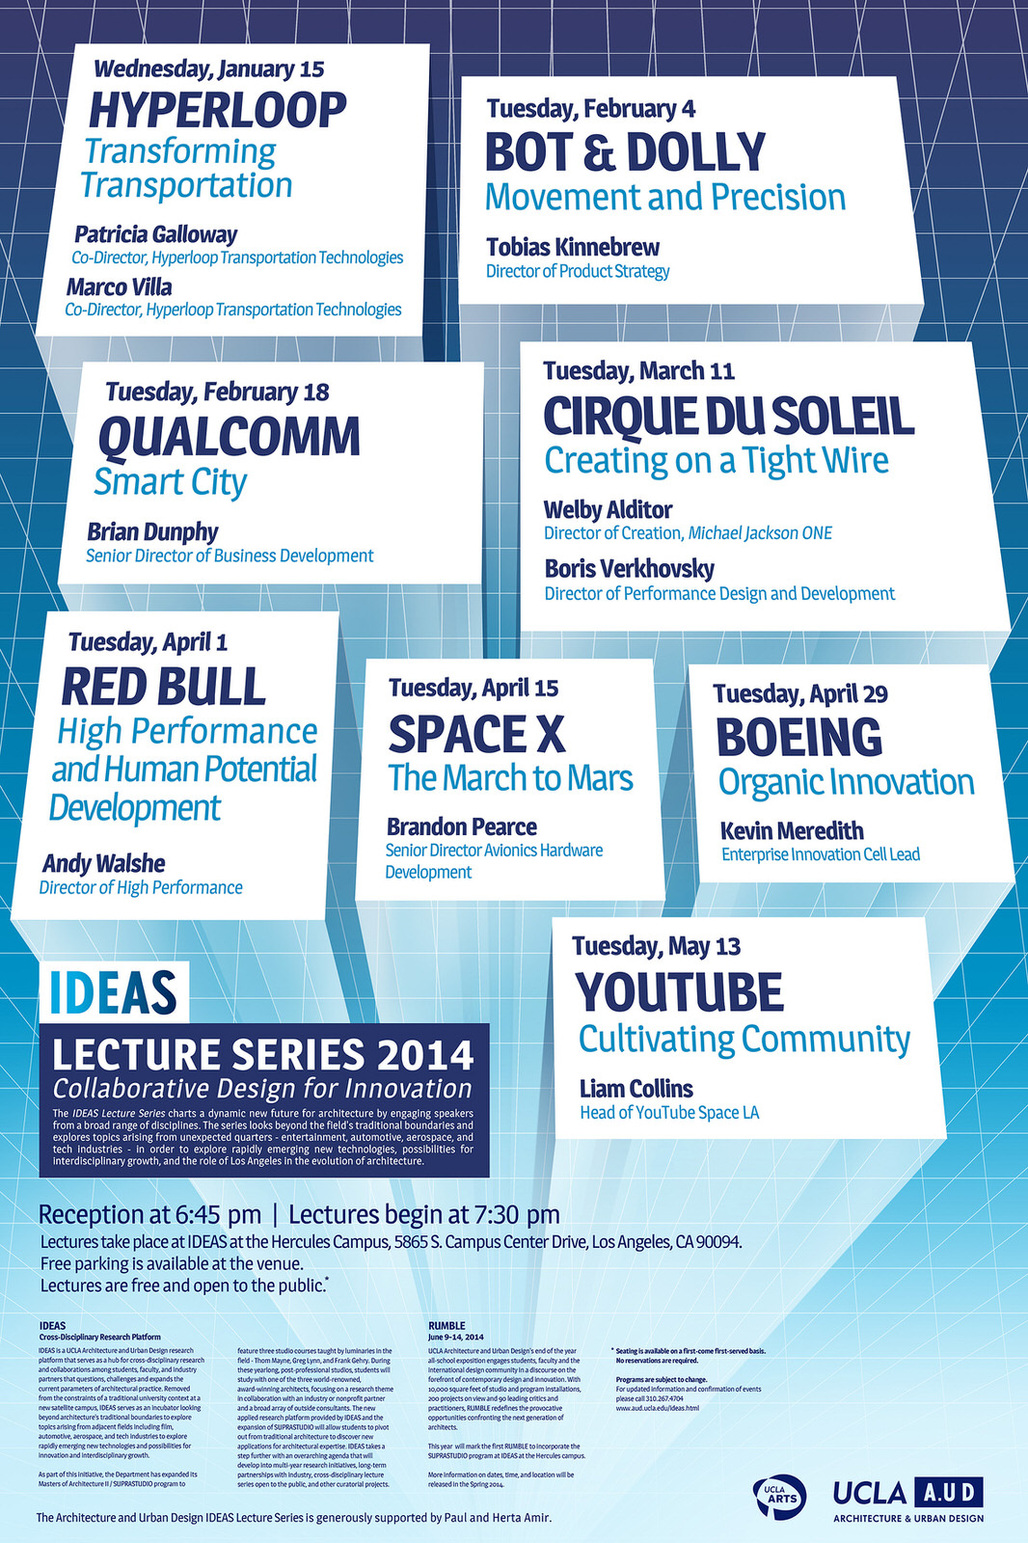 2014 IDEAS Lecture Series poster at UCLA A.UD. Image courtesy of UCLA A.UD.